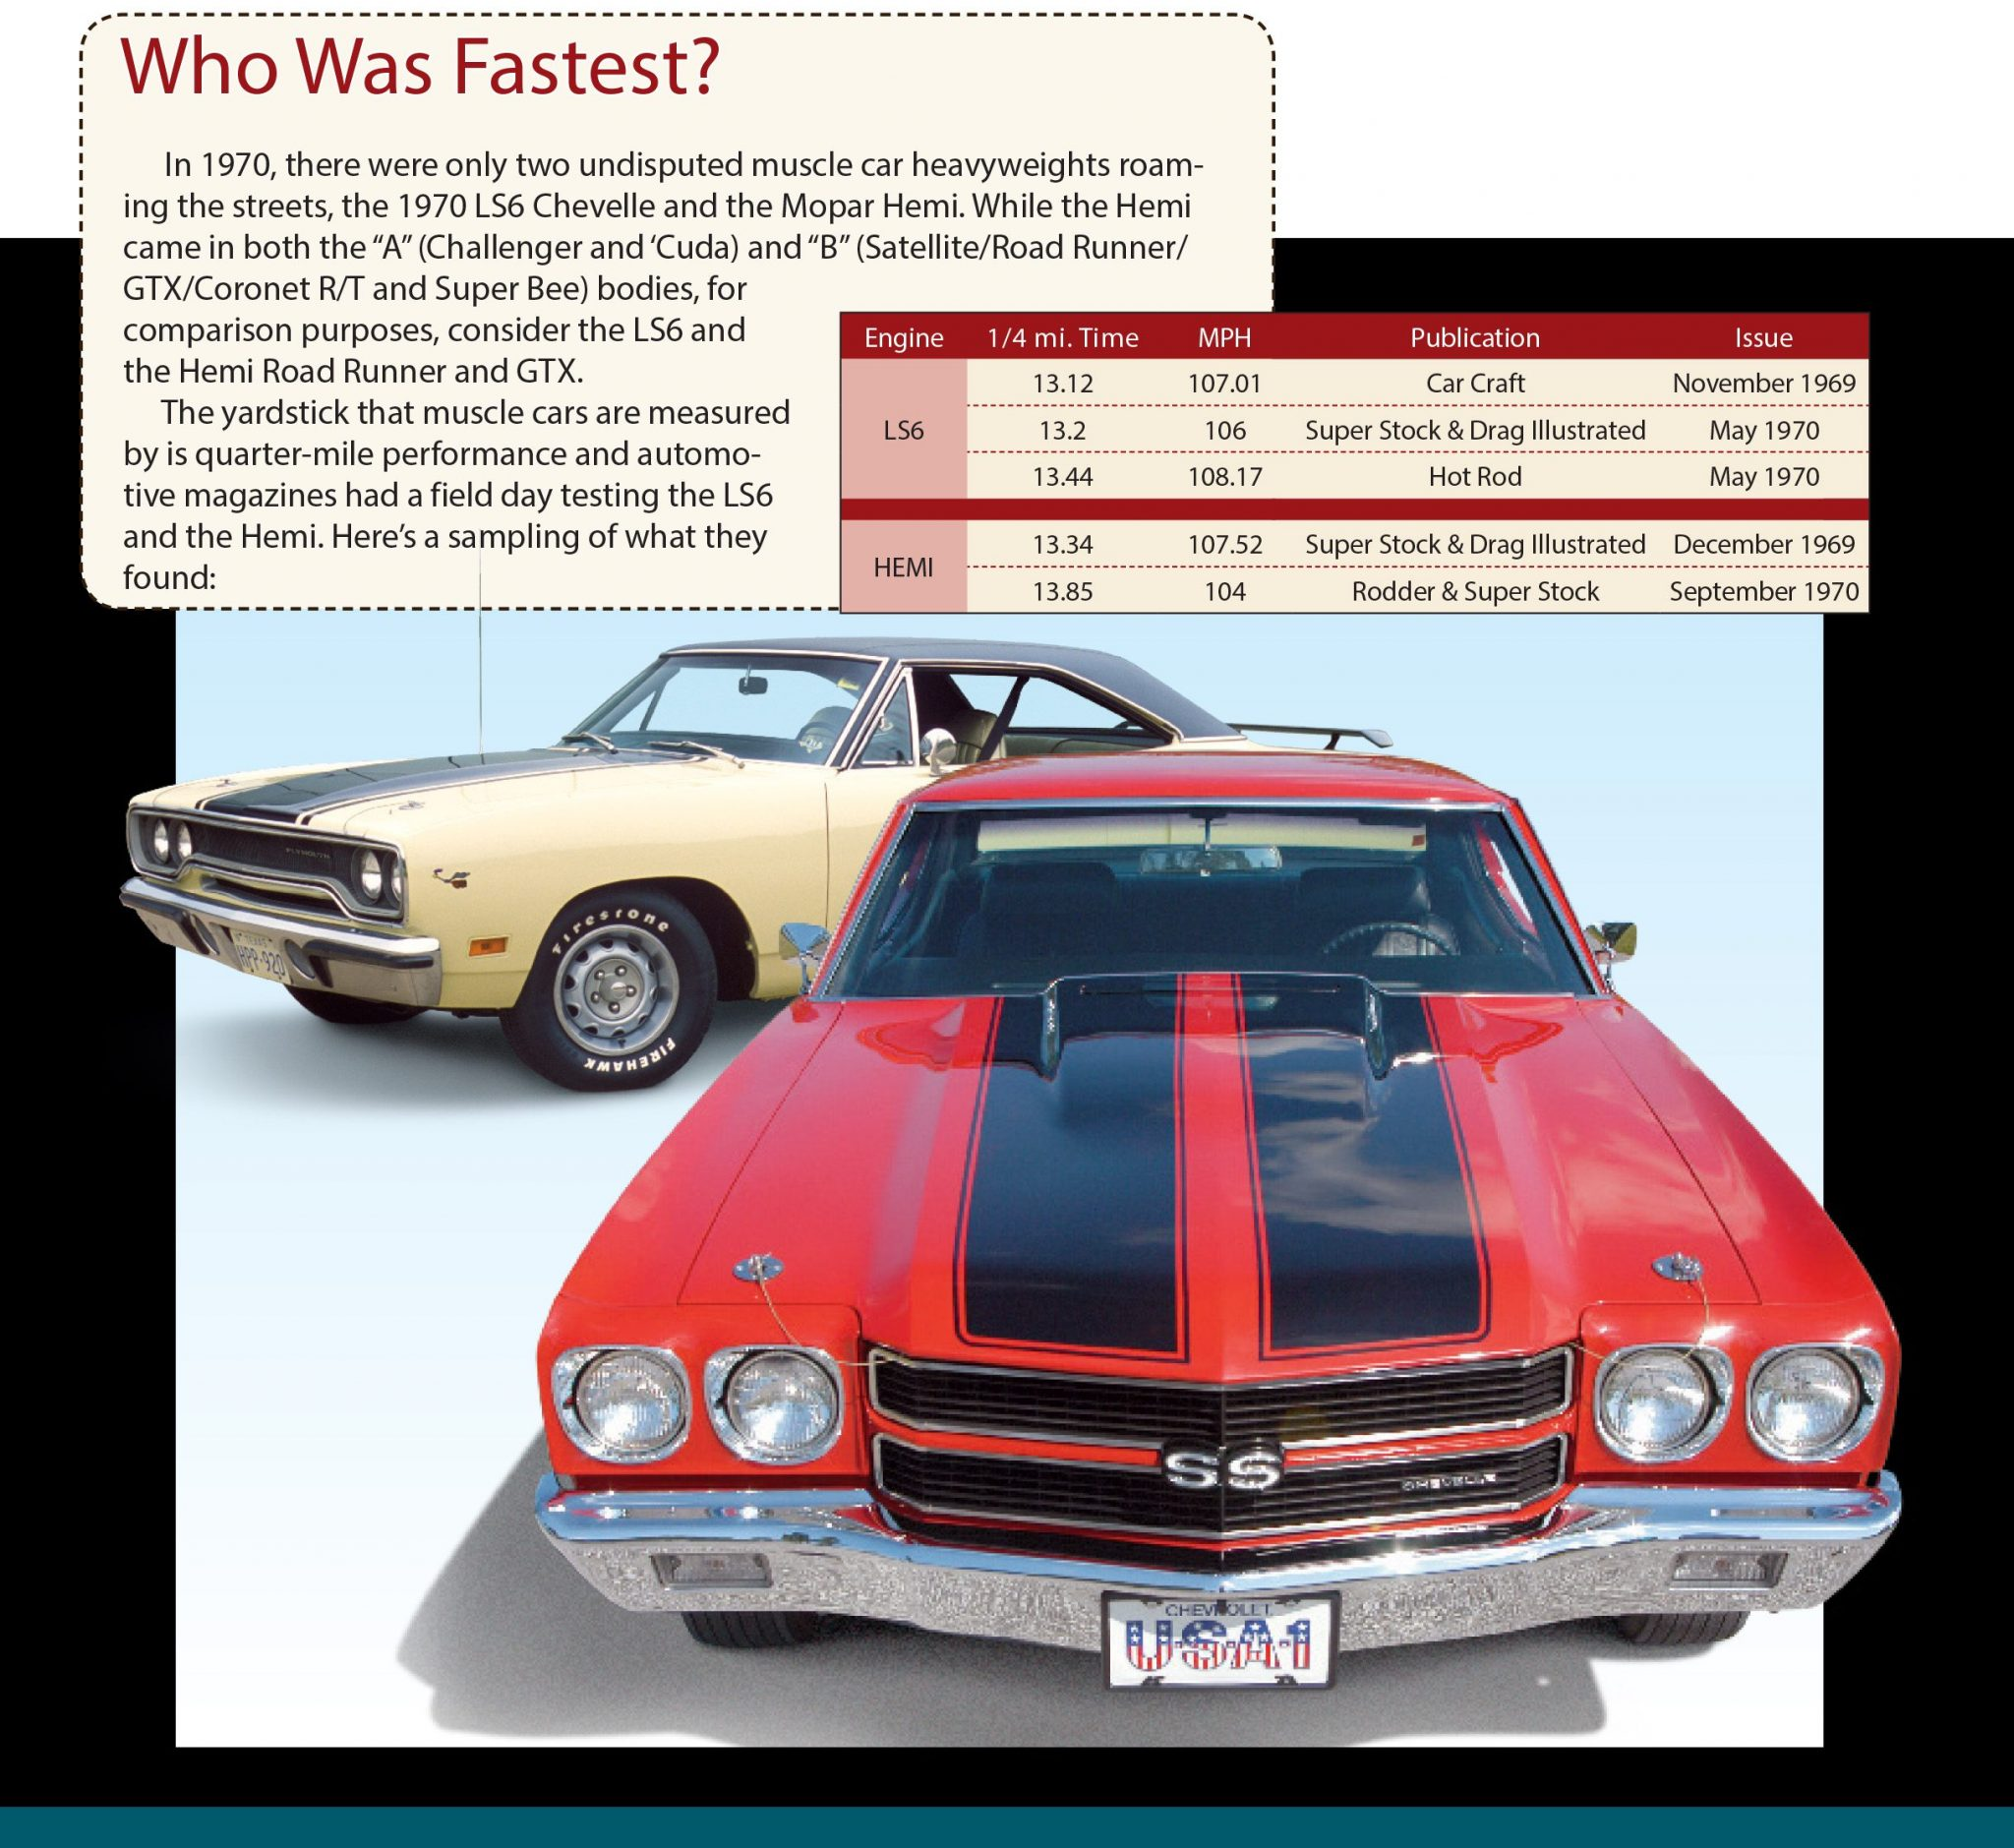 The Ultimate Muscle Car The Chevelle Was America S King